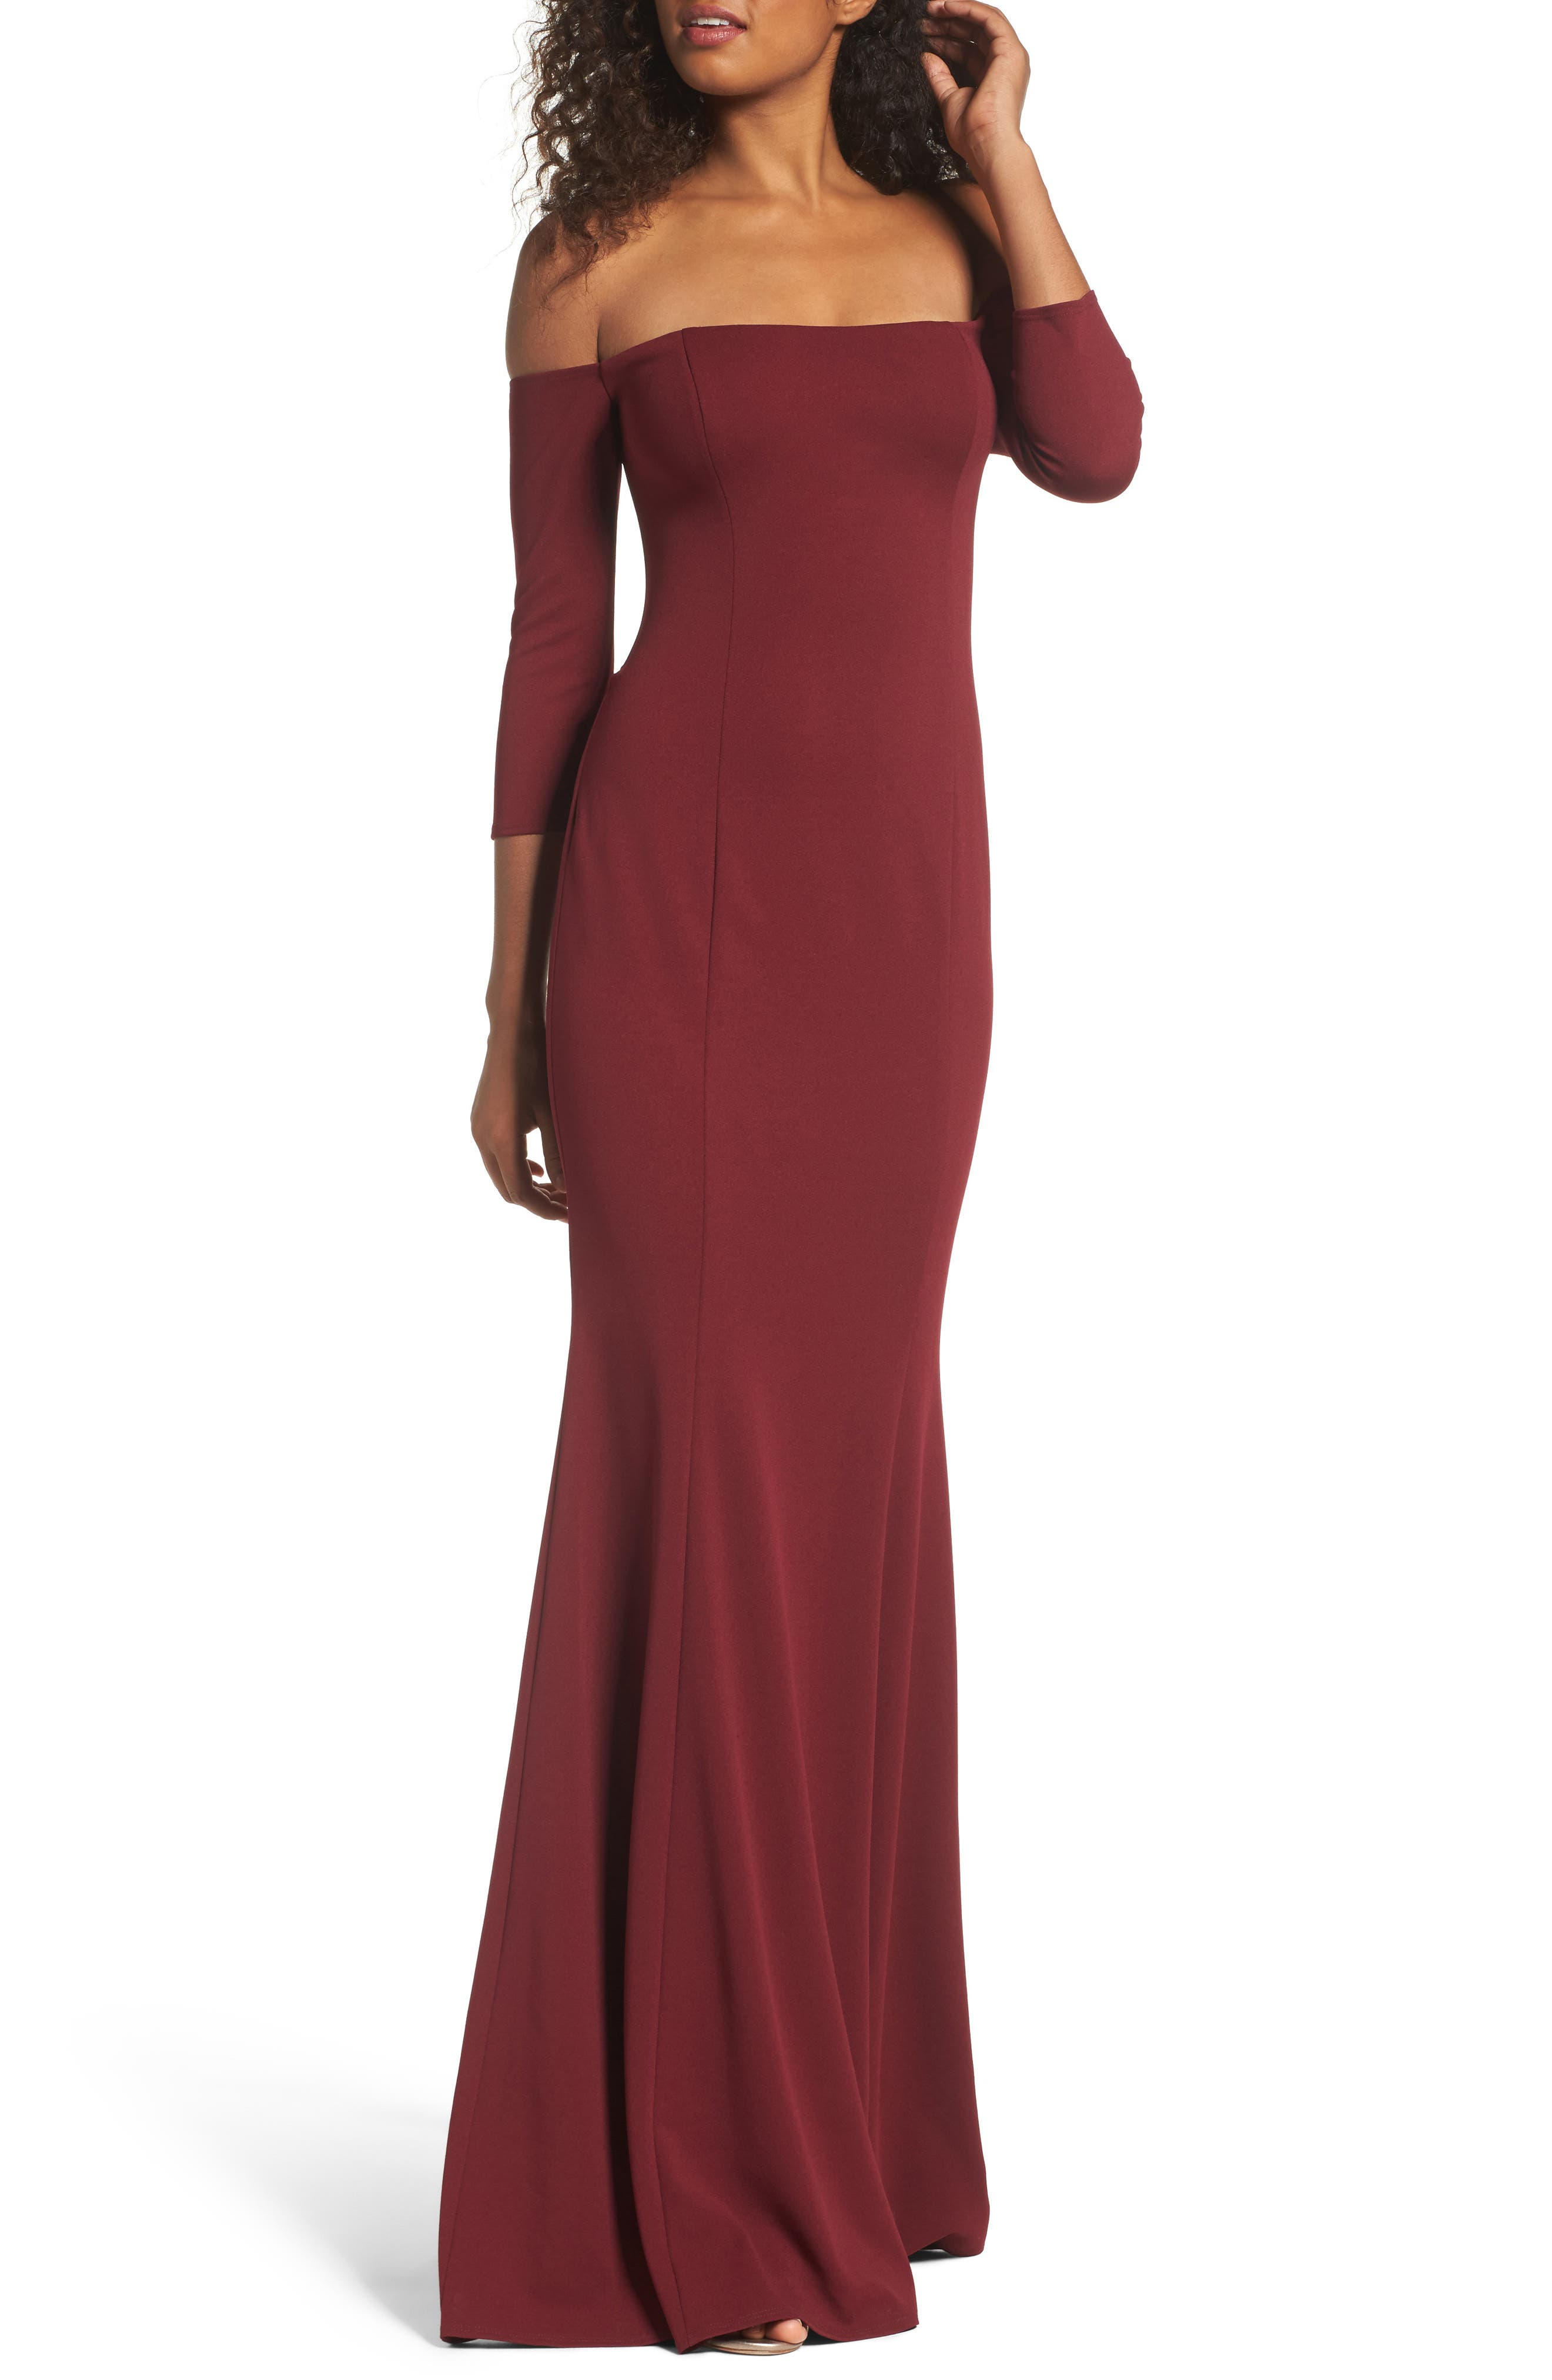 Brentwood Three-Quarter Sleeve Off the Shoulder Gown,                         Main,                         color, Bordeaux